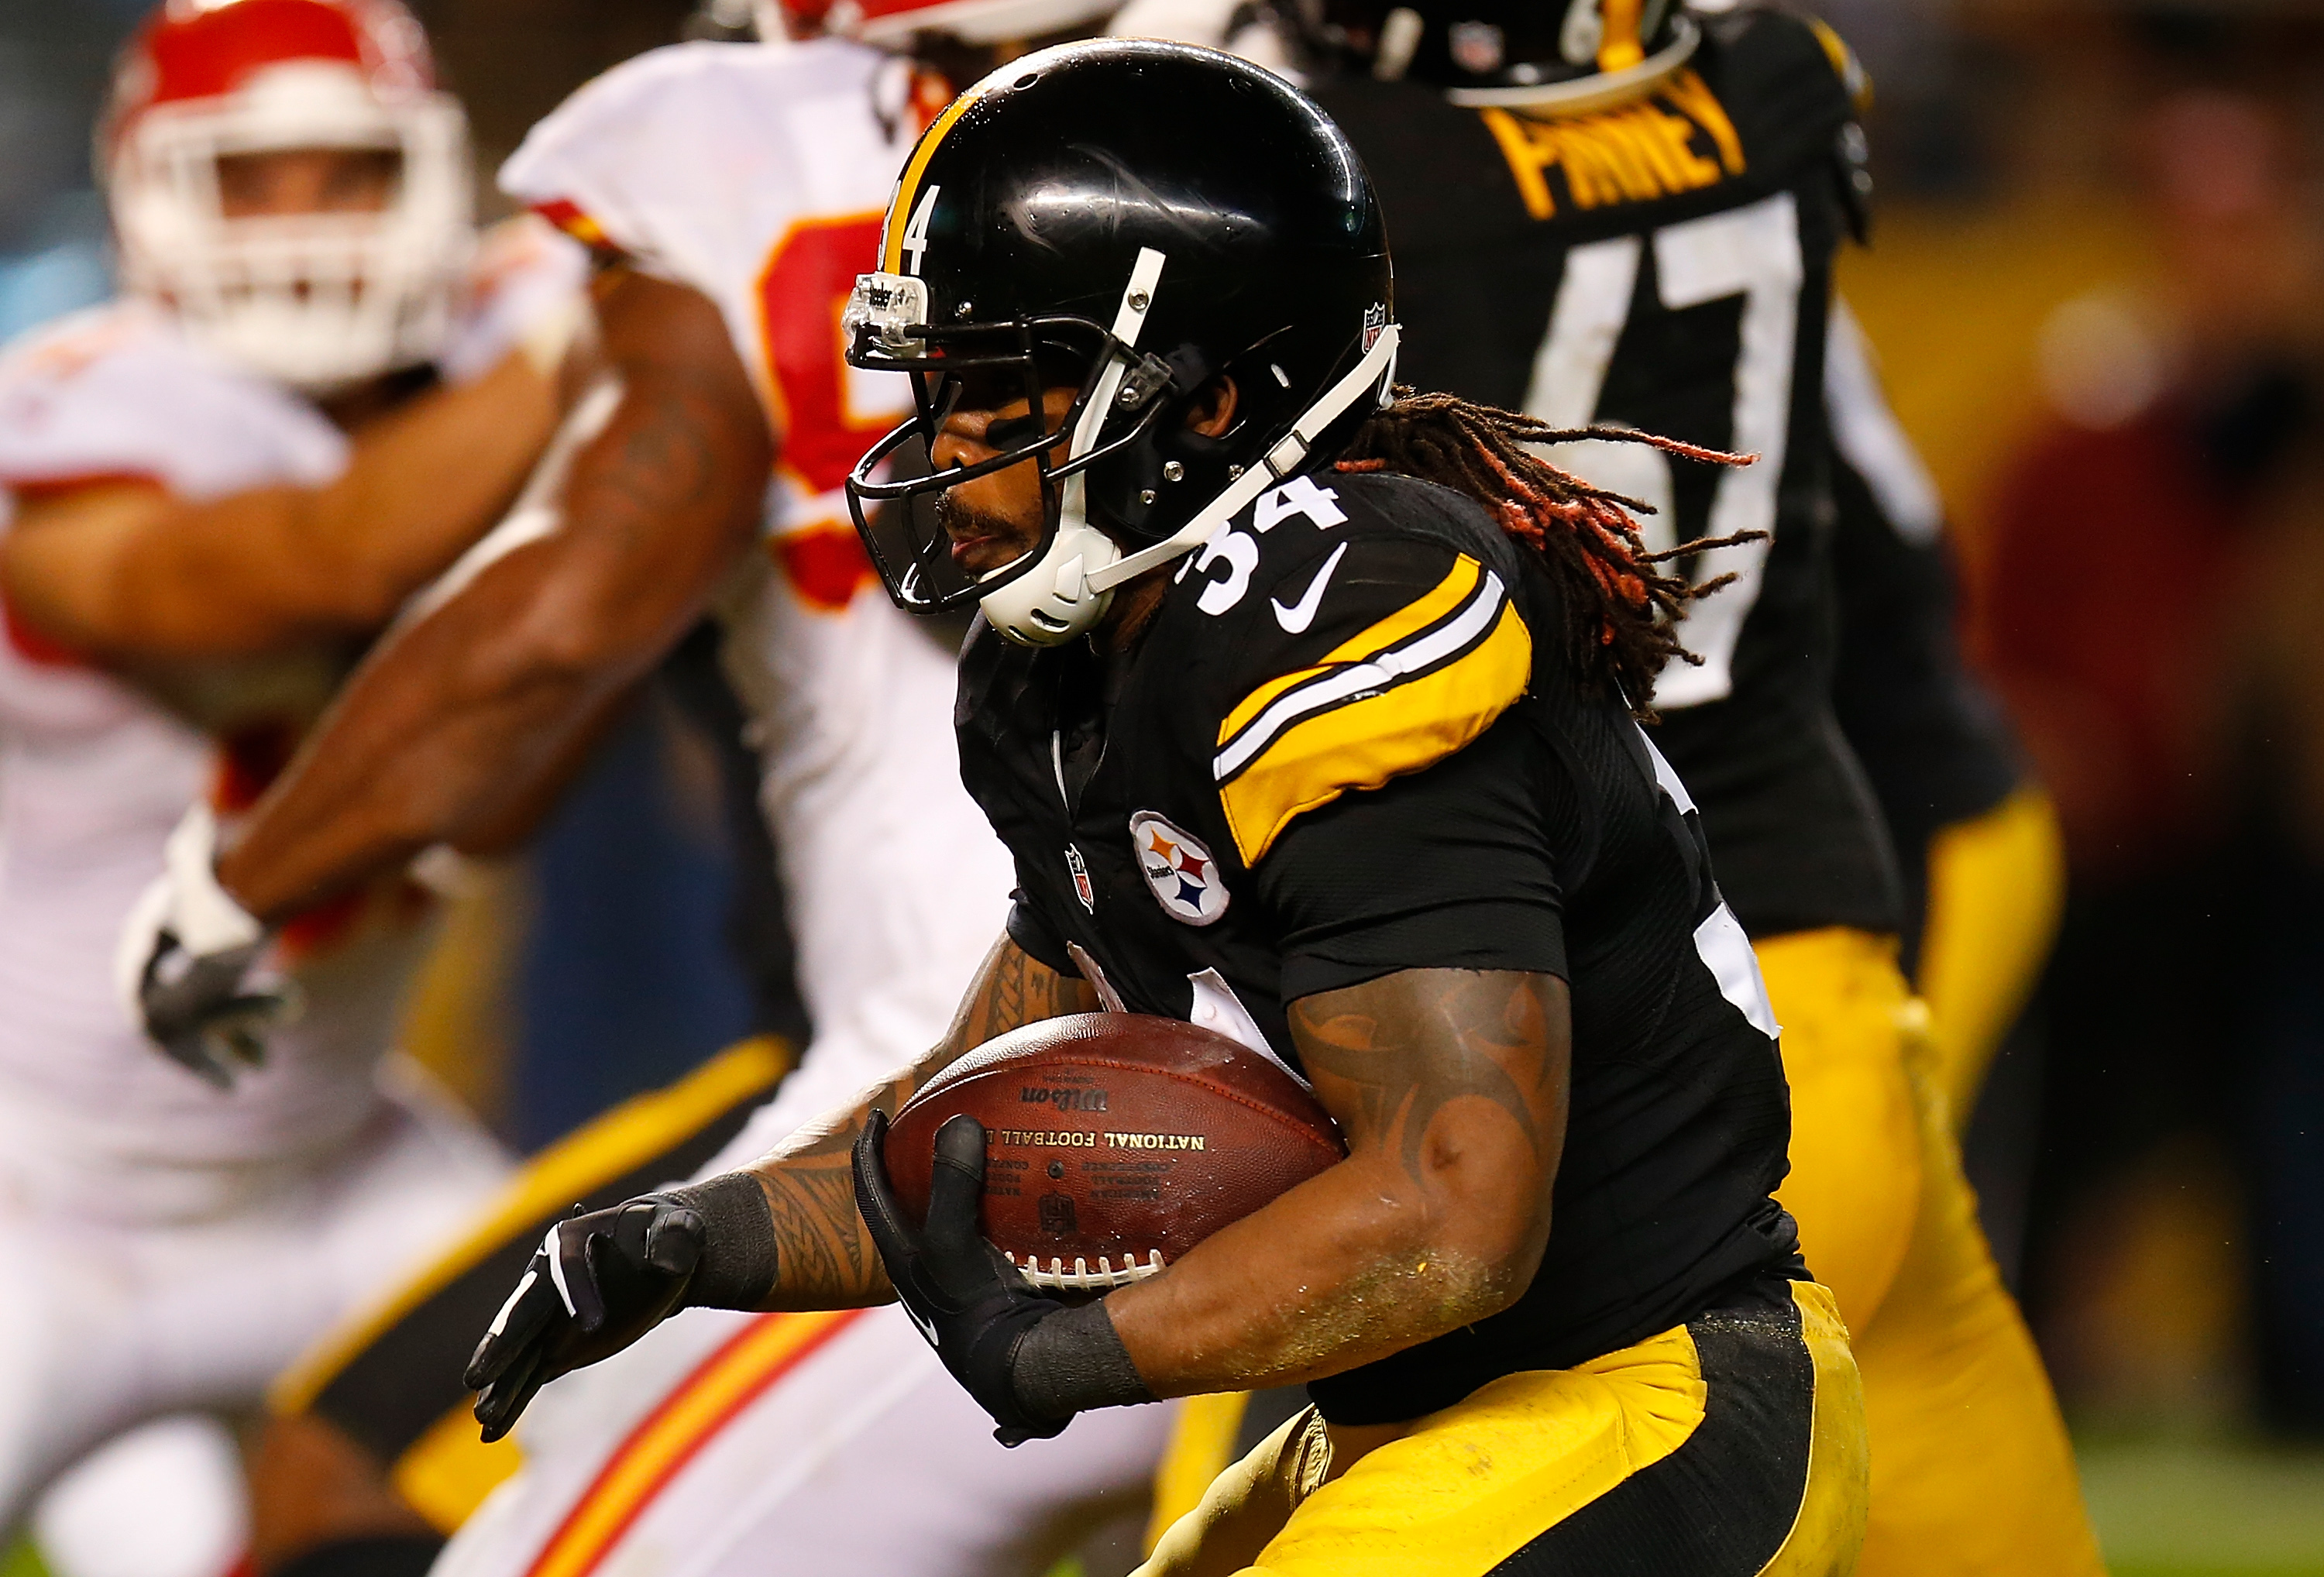 Why DeAngelo Williams refuses to play for the Cowboys